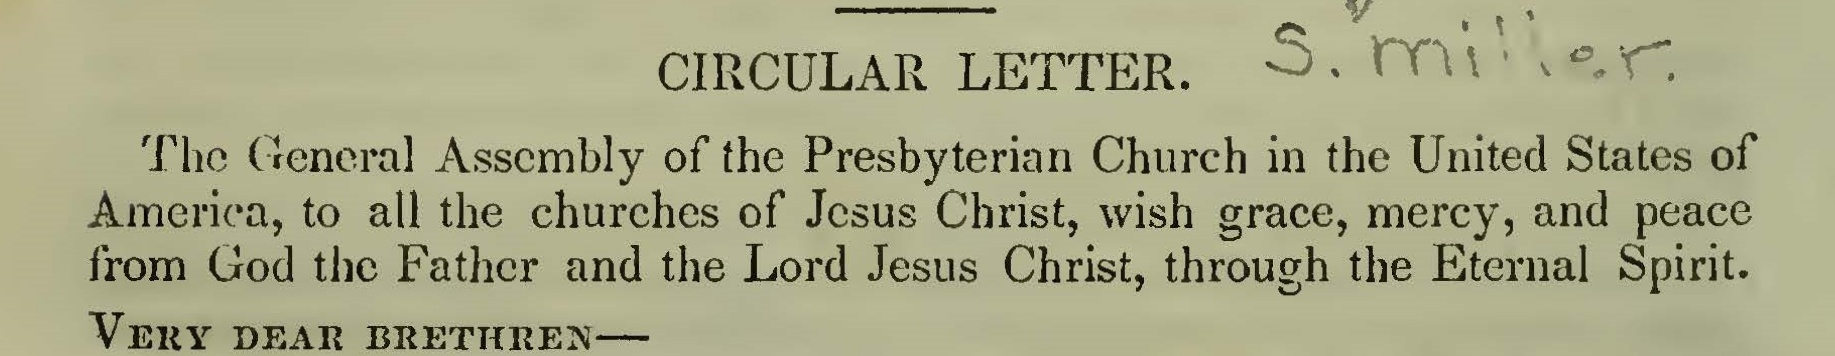 Miller, Samuel, Circular Letter to the Churches of Christ Title Page.jpg